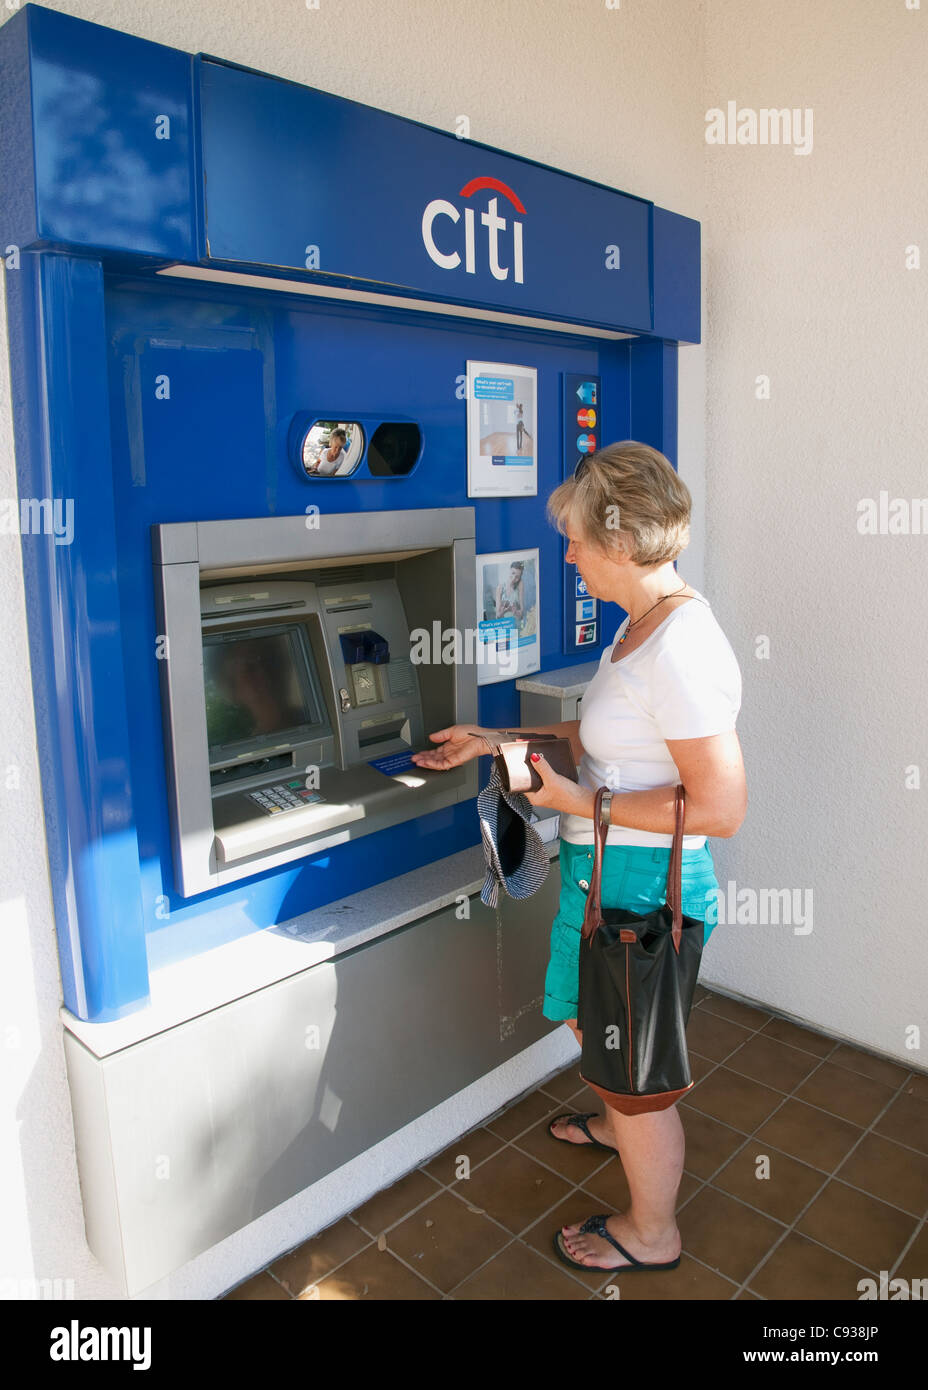 A Citibank Stock Photos Images Alamy Wiring Instructions For Withdrawing Cash From Machine Image